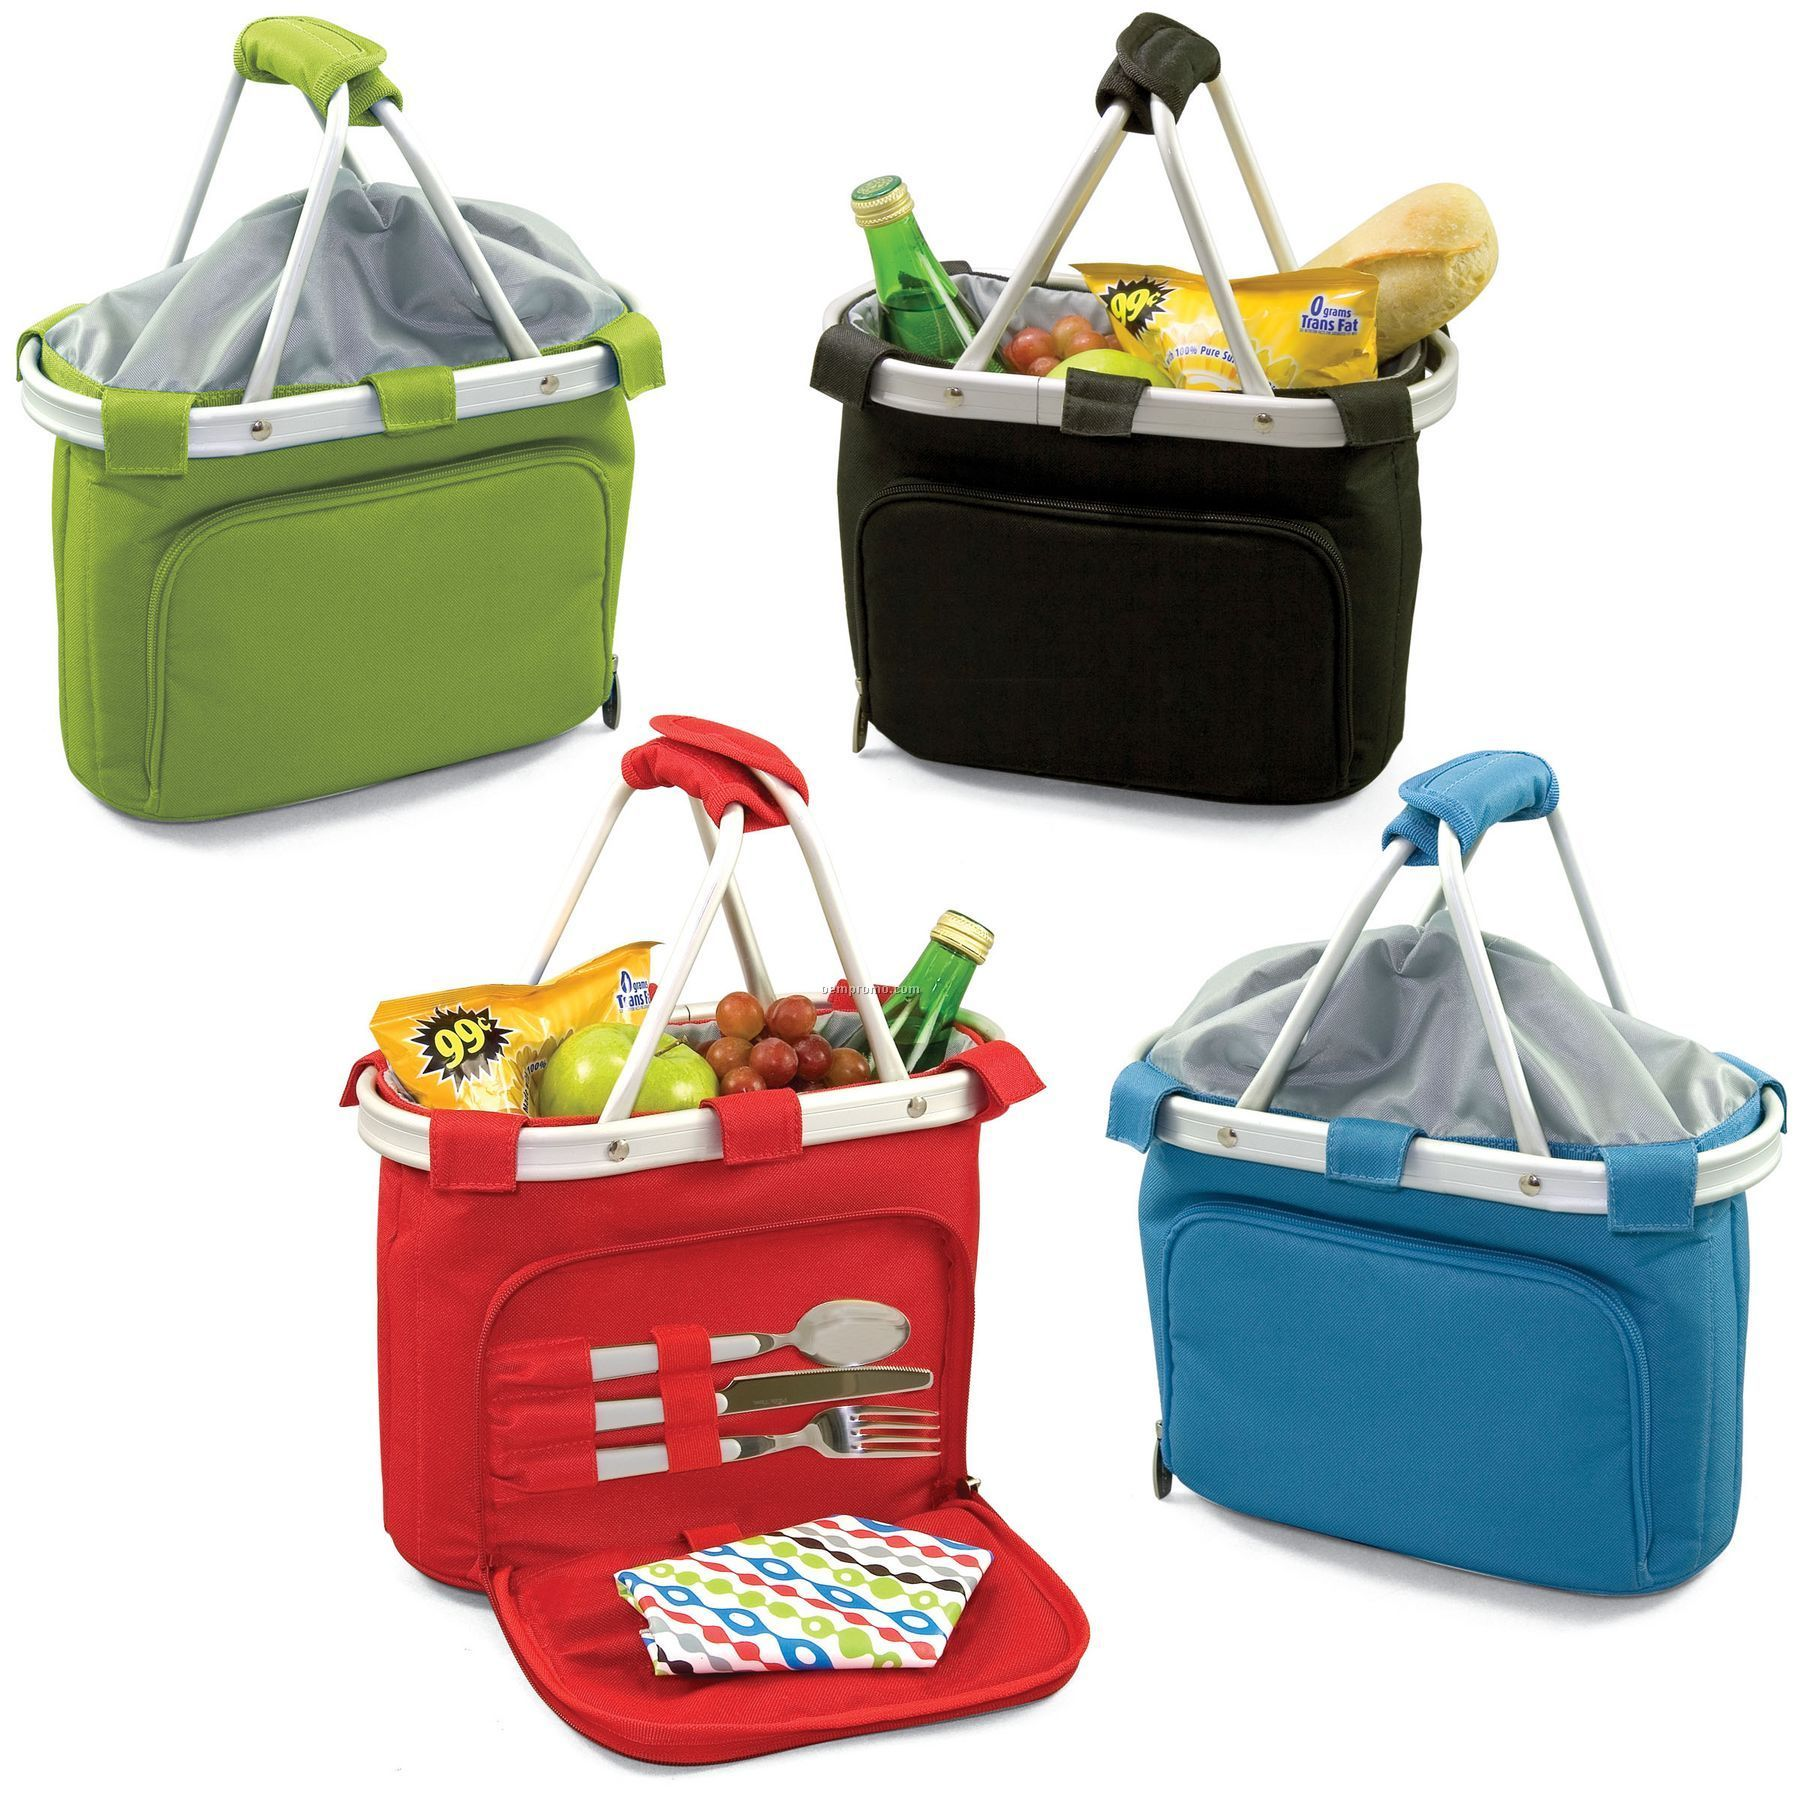 Metro Uno Insulated Tote Basket W/ Lunch Service For One (Solids)